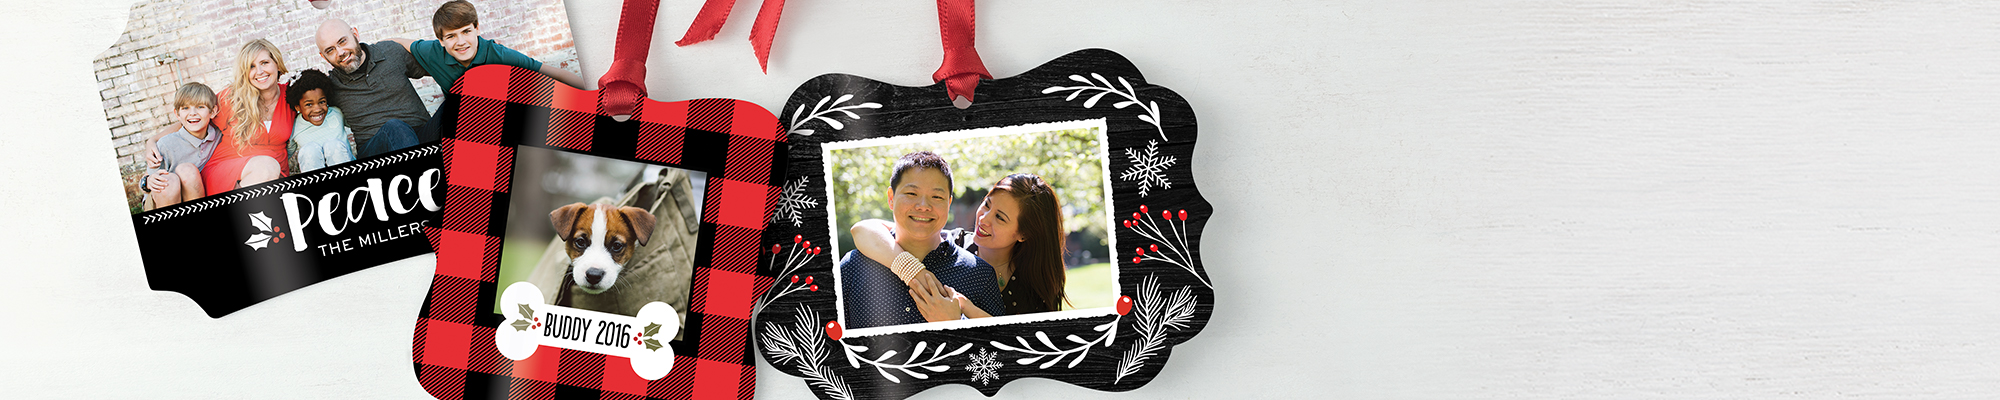 Photo Gifts : From photo mugs to pillows, ornaments, and more, we have all your merrymaking must-haves.